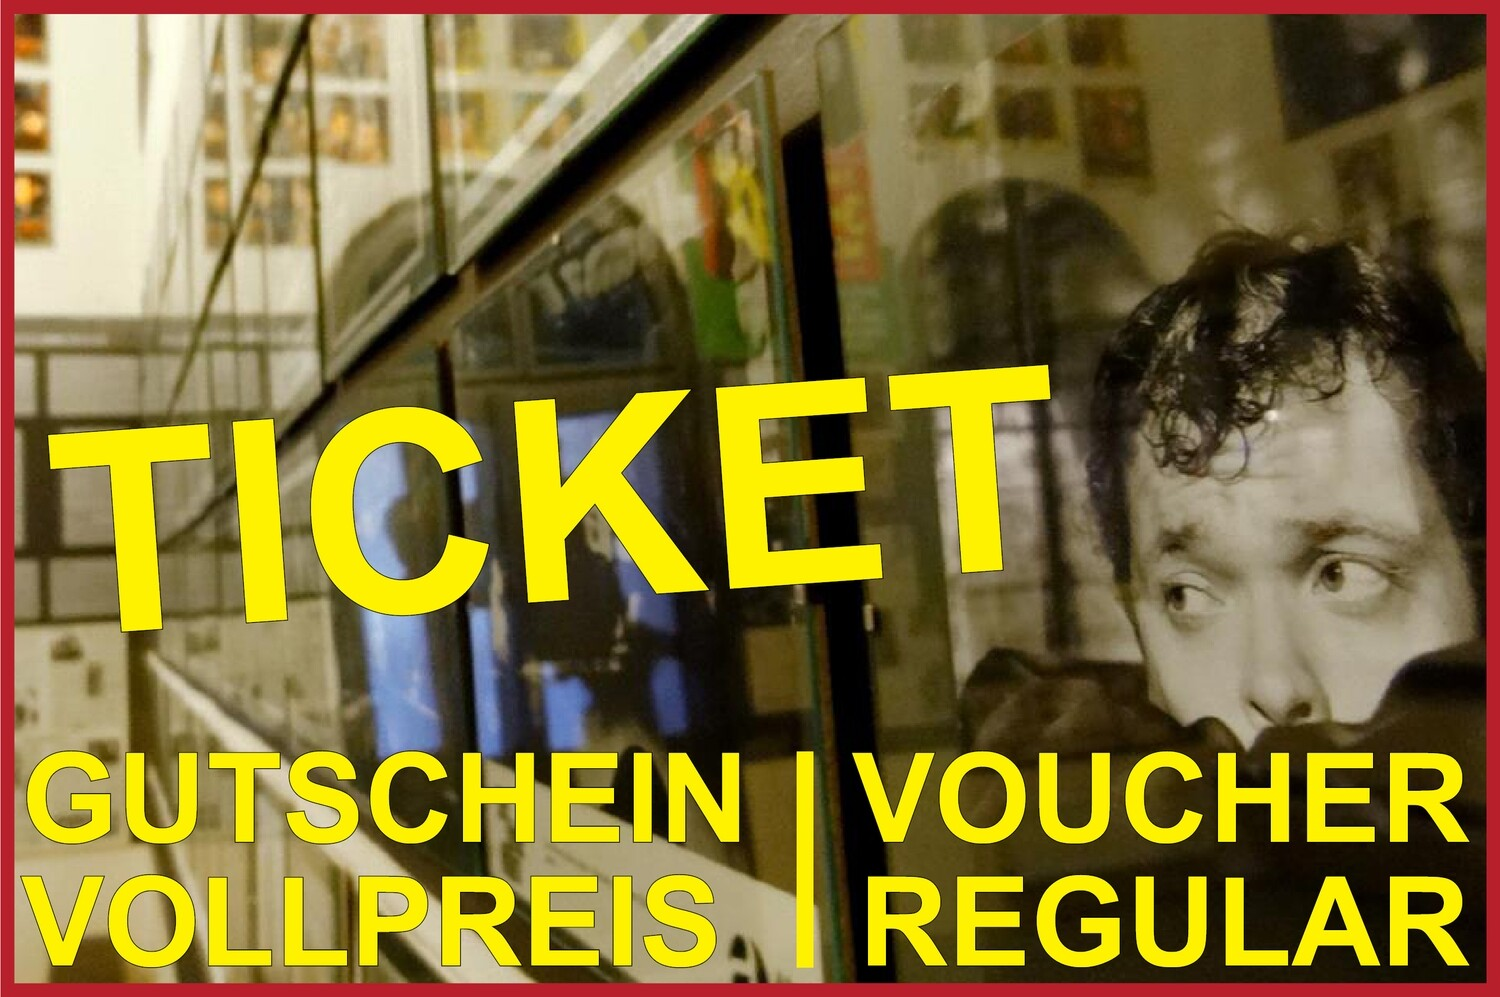 TICKET 1 PERSON